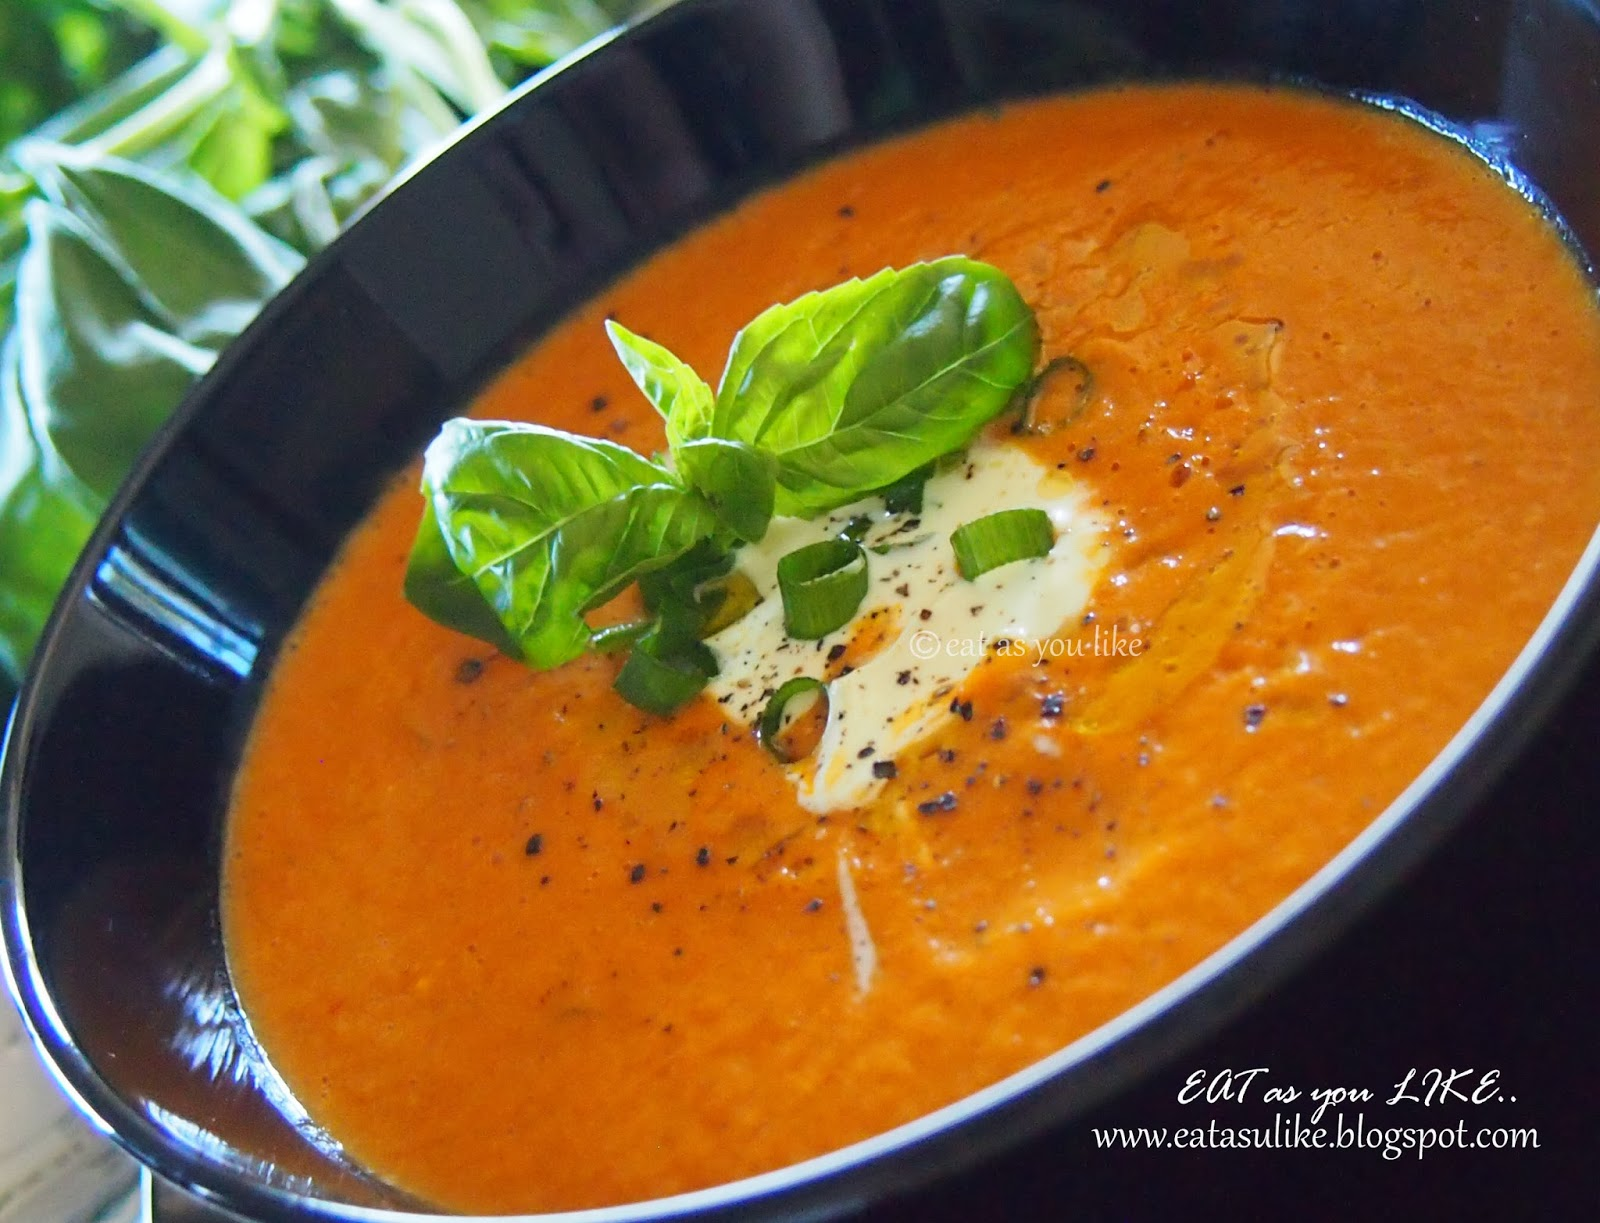 http://eatasulike.blogspot.com.au/2014/01/roasted-red-capsicum-and-butternut-soup_21.html